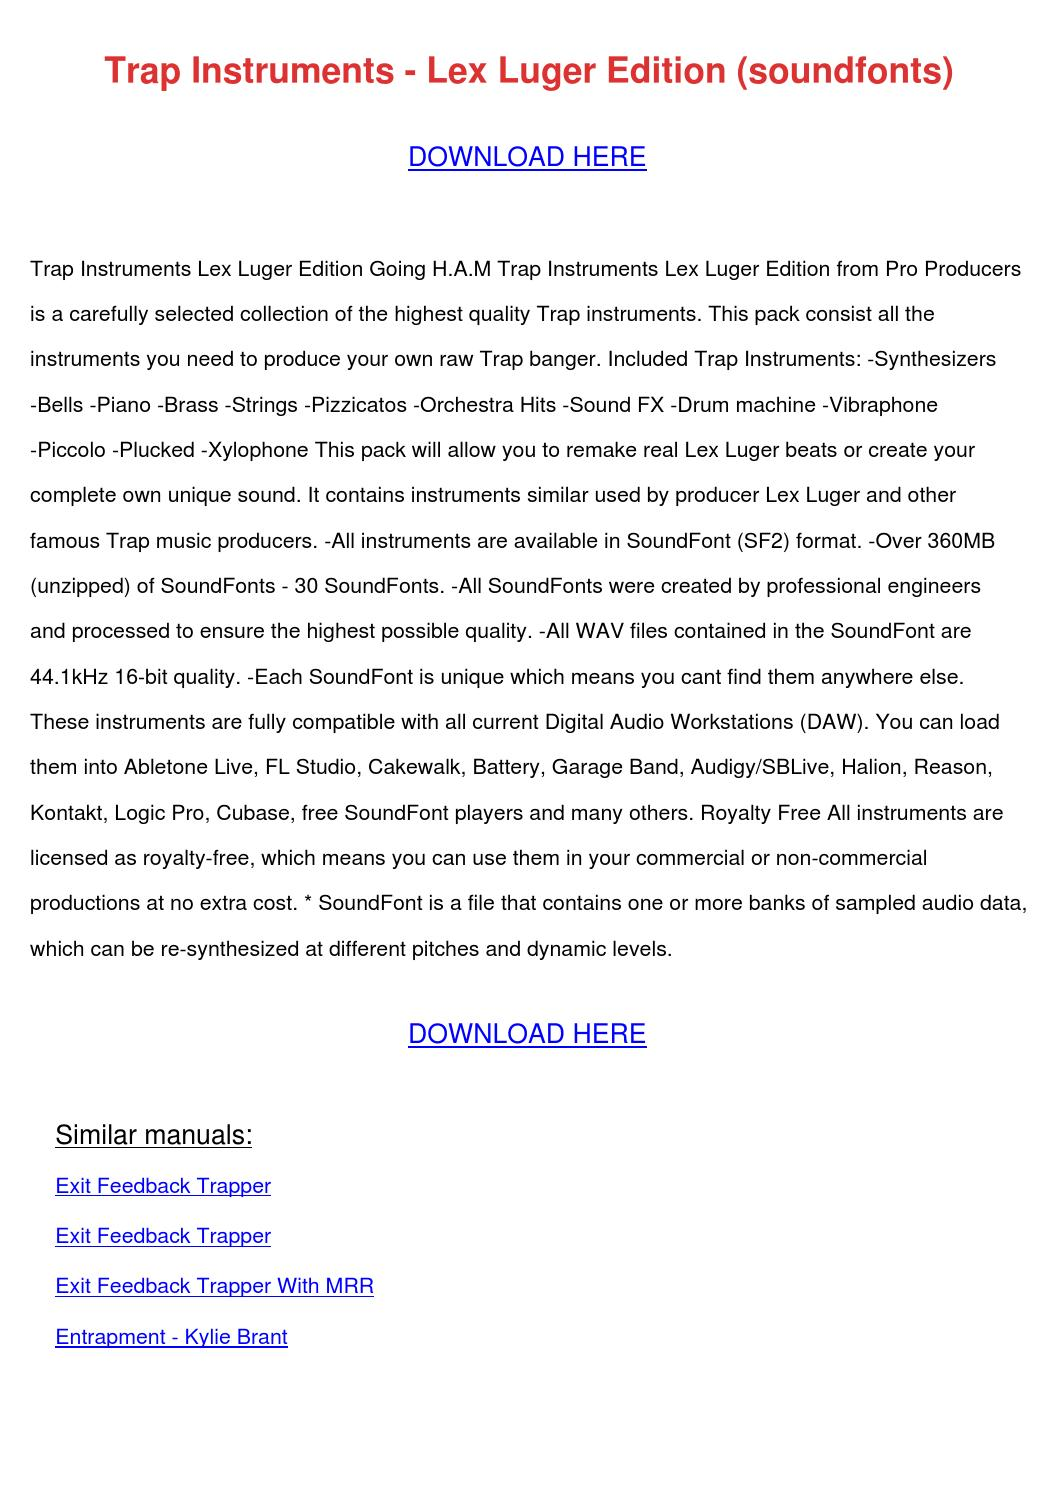 Trap Instruments Lex Luger Edition Soundfonts by LeilaLanders - issuu